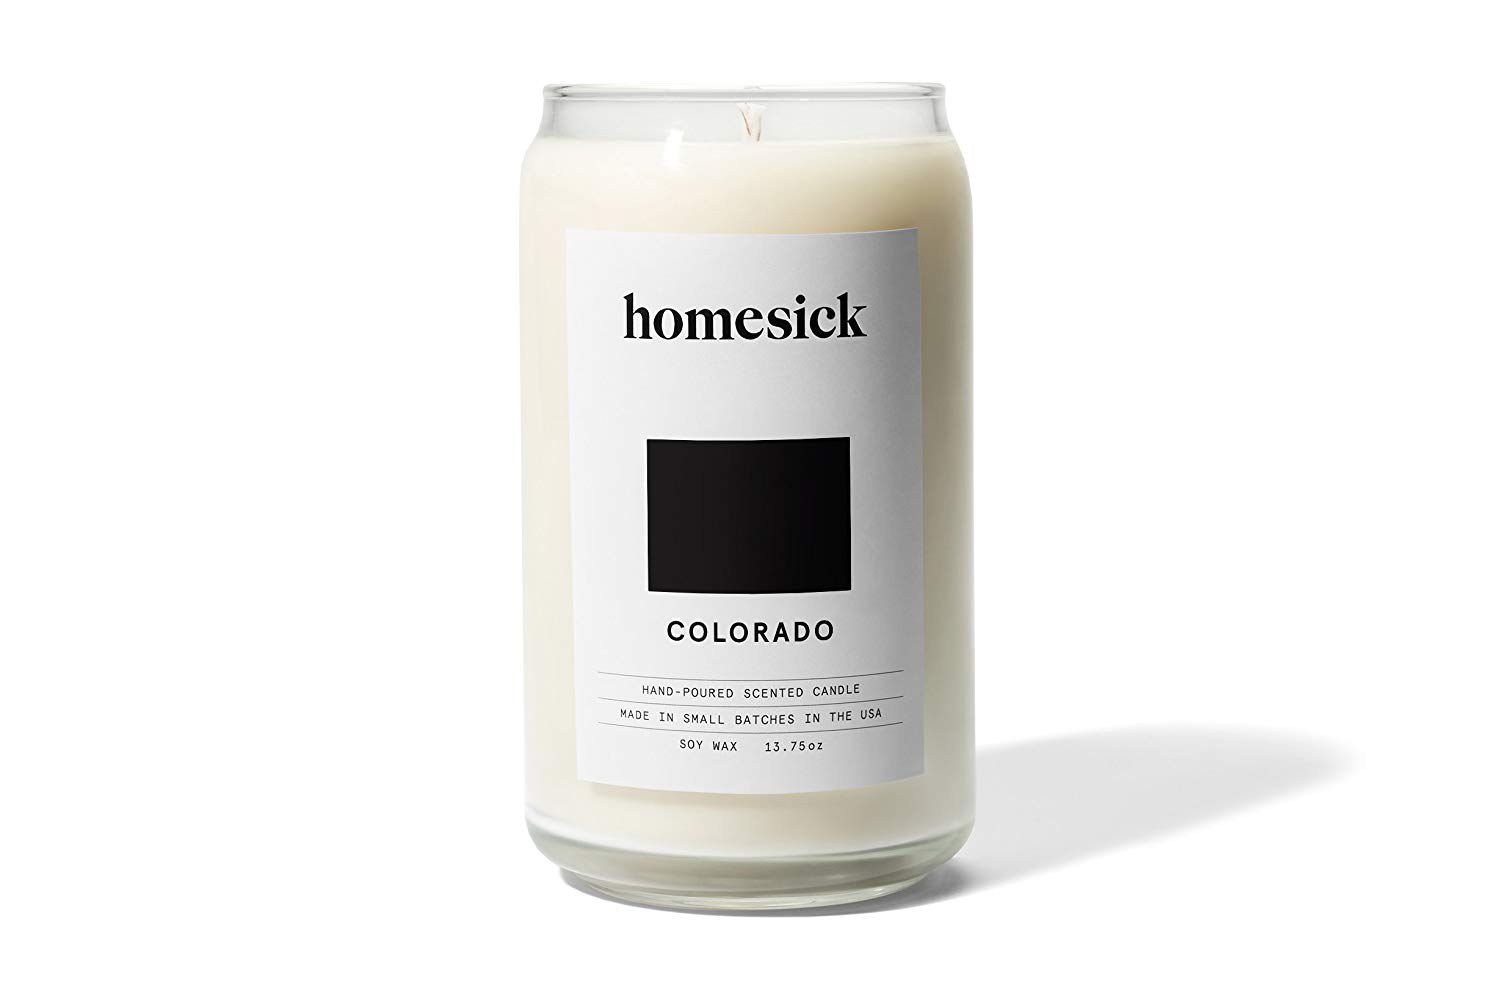 Travel back to your favorite state with one sweet scented candle!